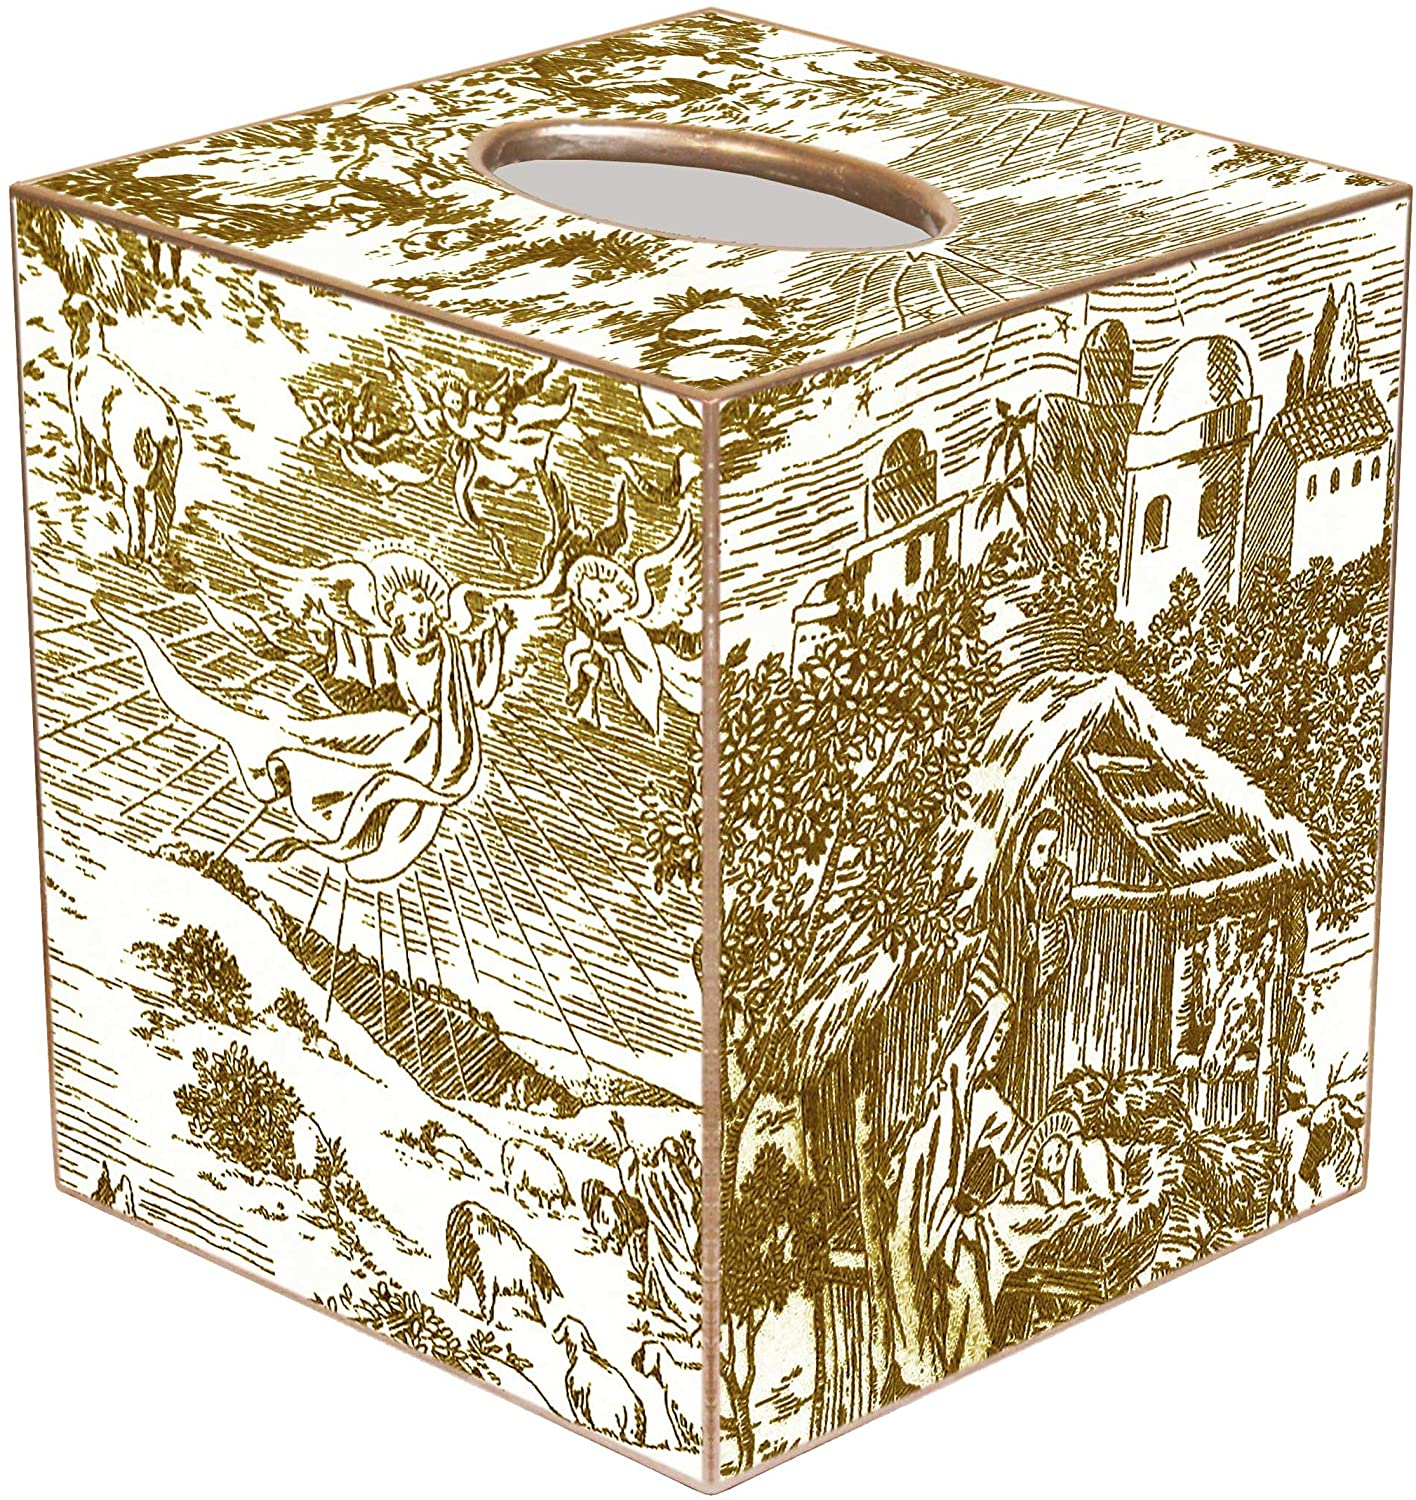 Marye-Kelley Nativity Toile Christmas Tissue Box Cover Gold